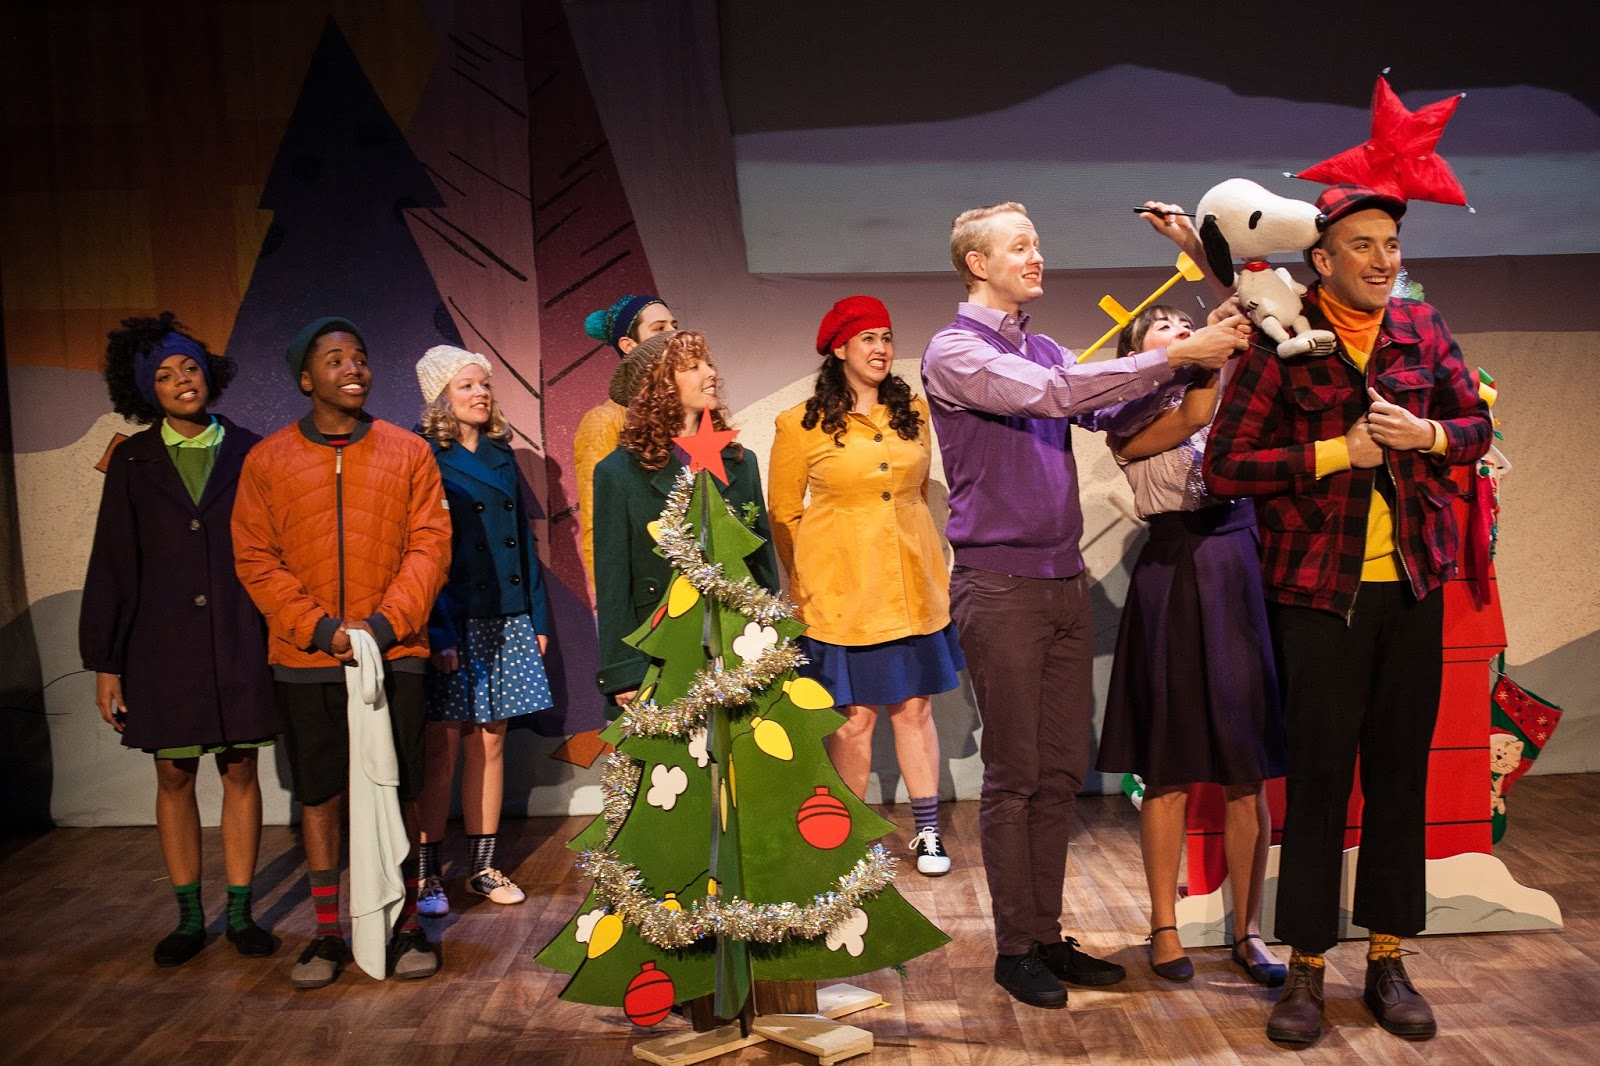 once upon a time i went to a show and it was called a charlie brown christmas it was written by charles m schulz based on the tv special by bill melendez - Charlie Brown Christmas On Tv